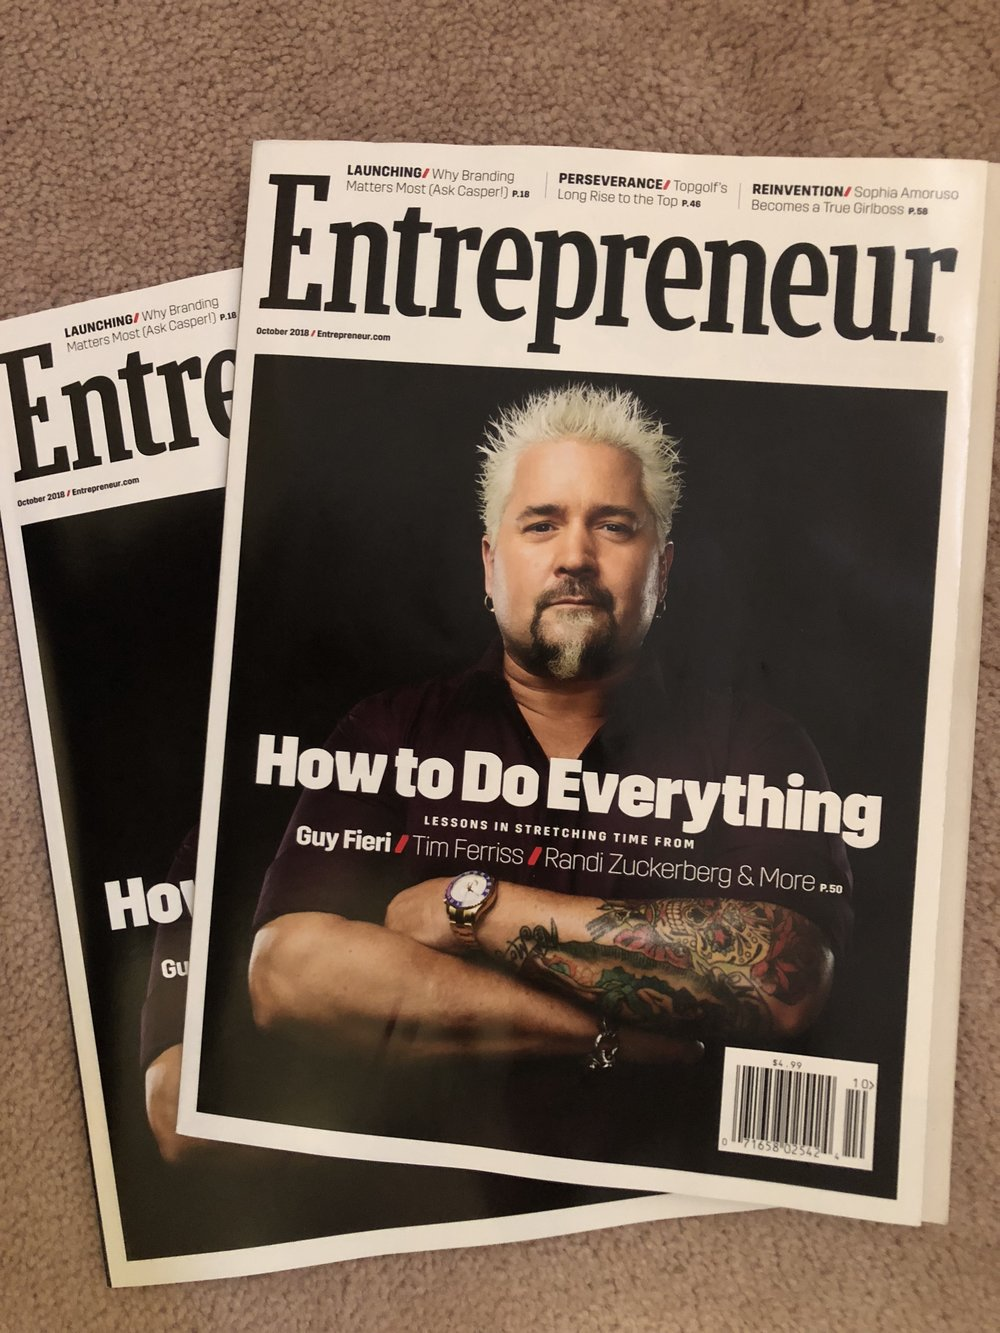 https://www.entrepreneur.com/magazine Article is on page 58-63